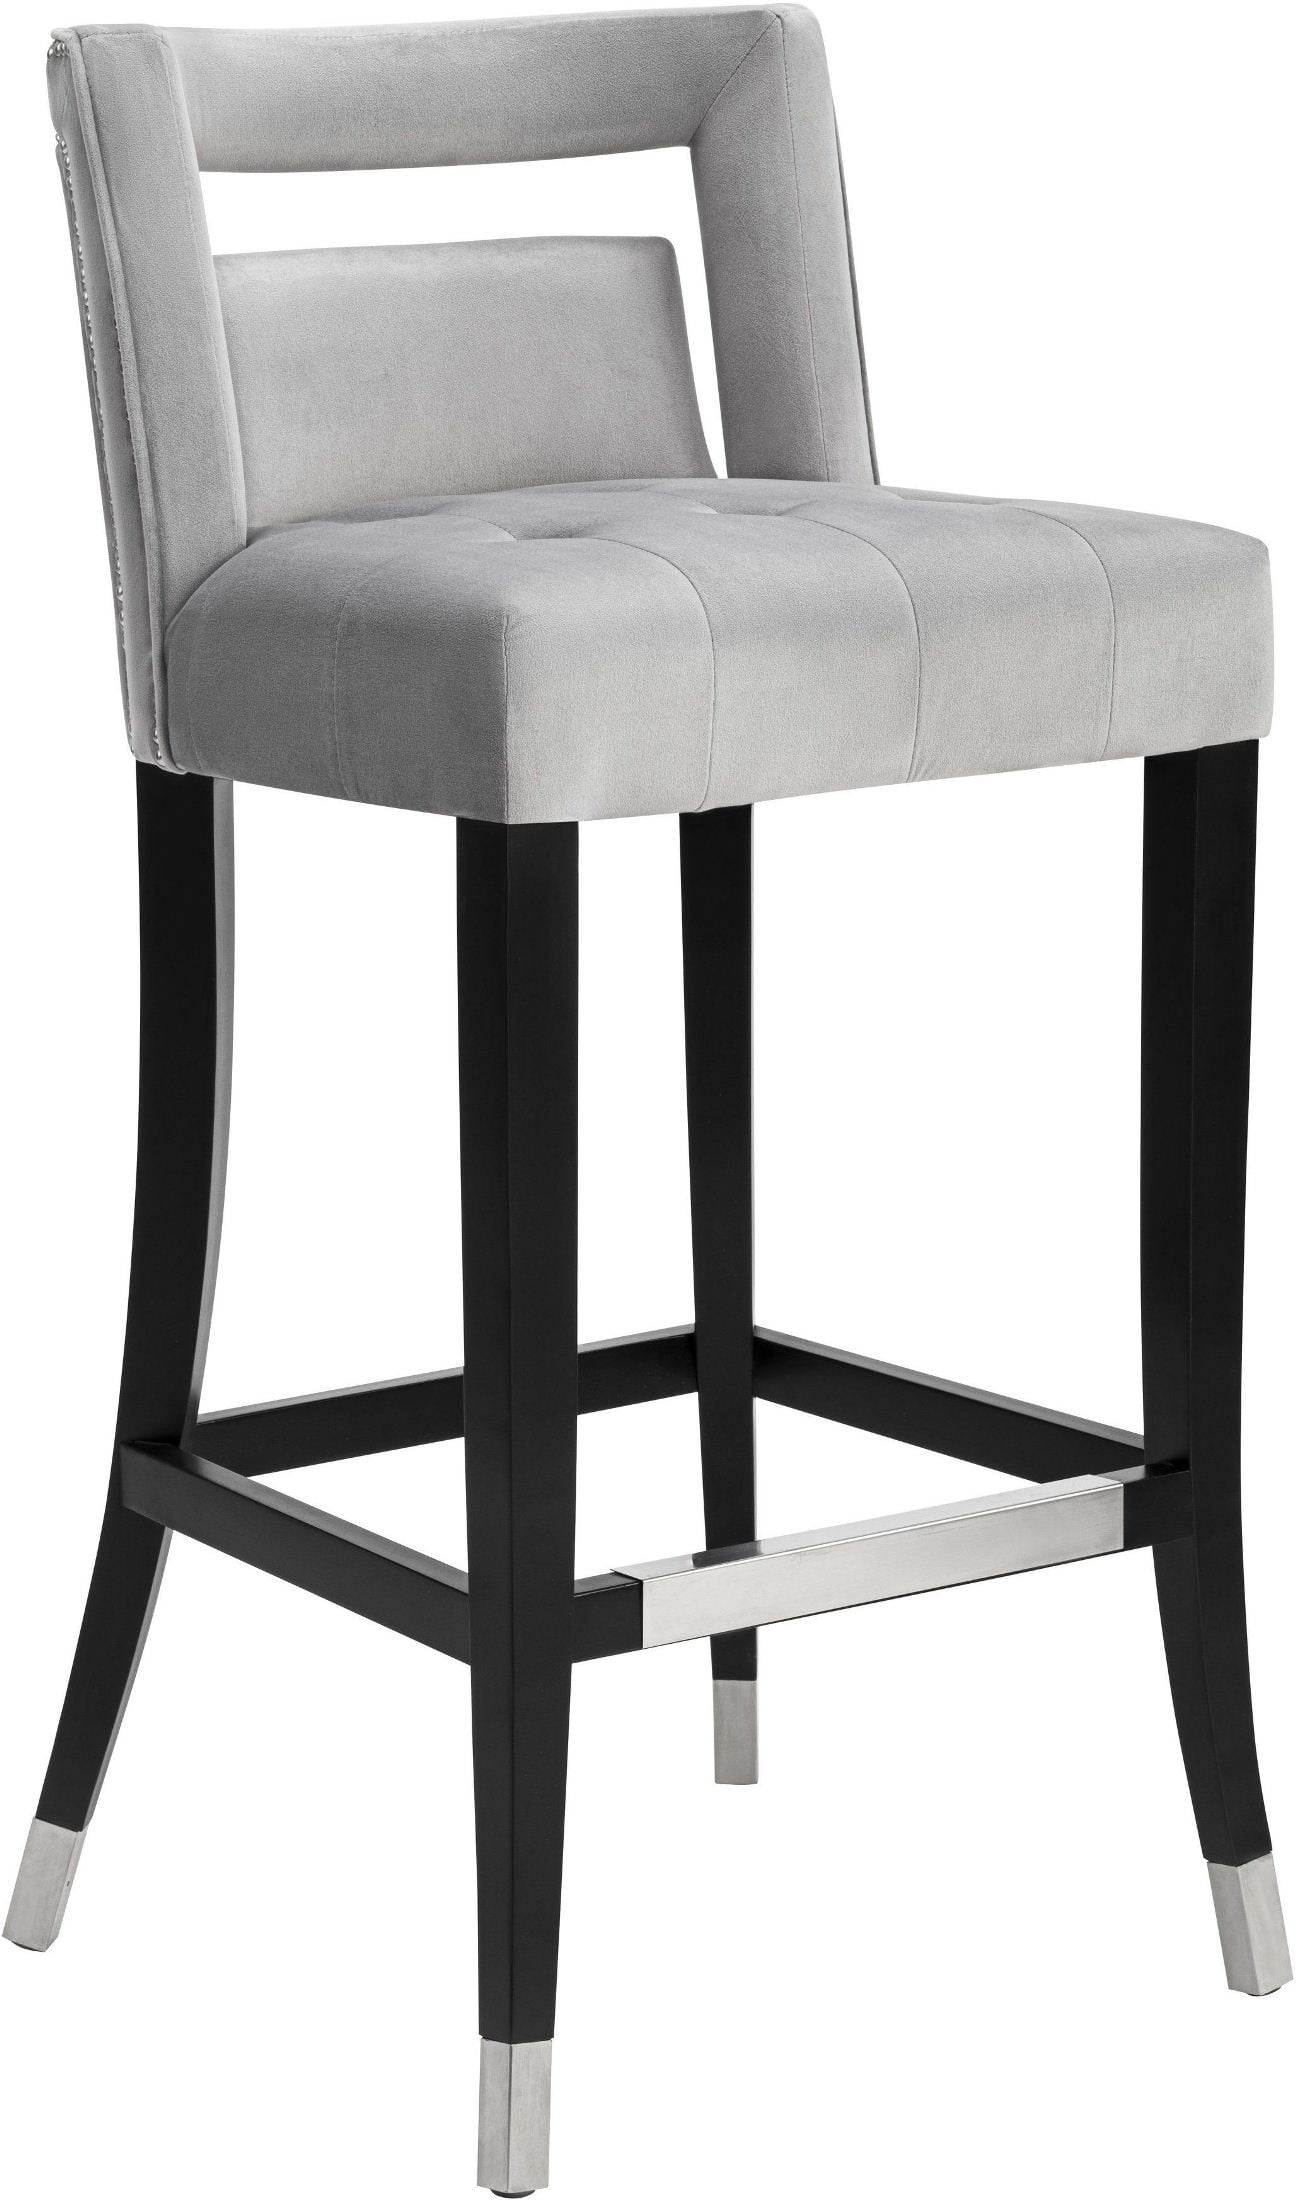 gray home swivel co stools furniture wayfair reviews topeka stool darby pdx bar